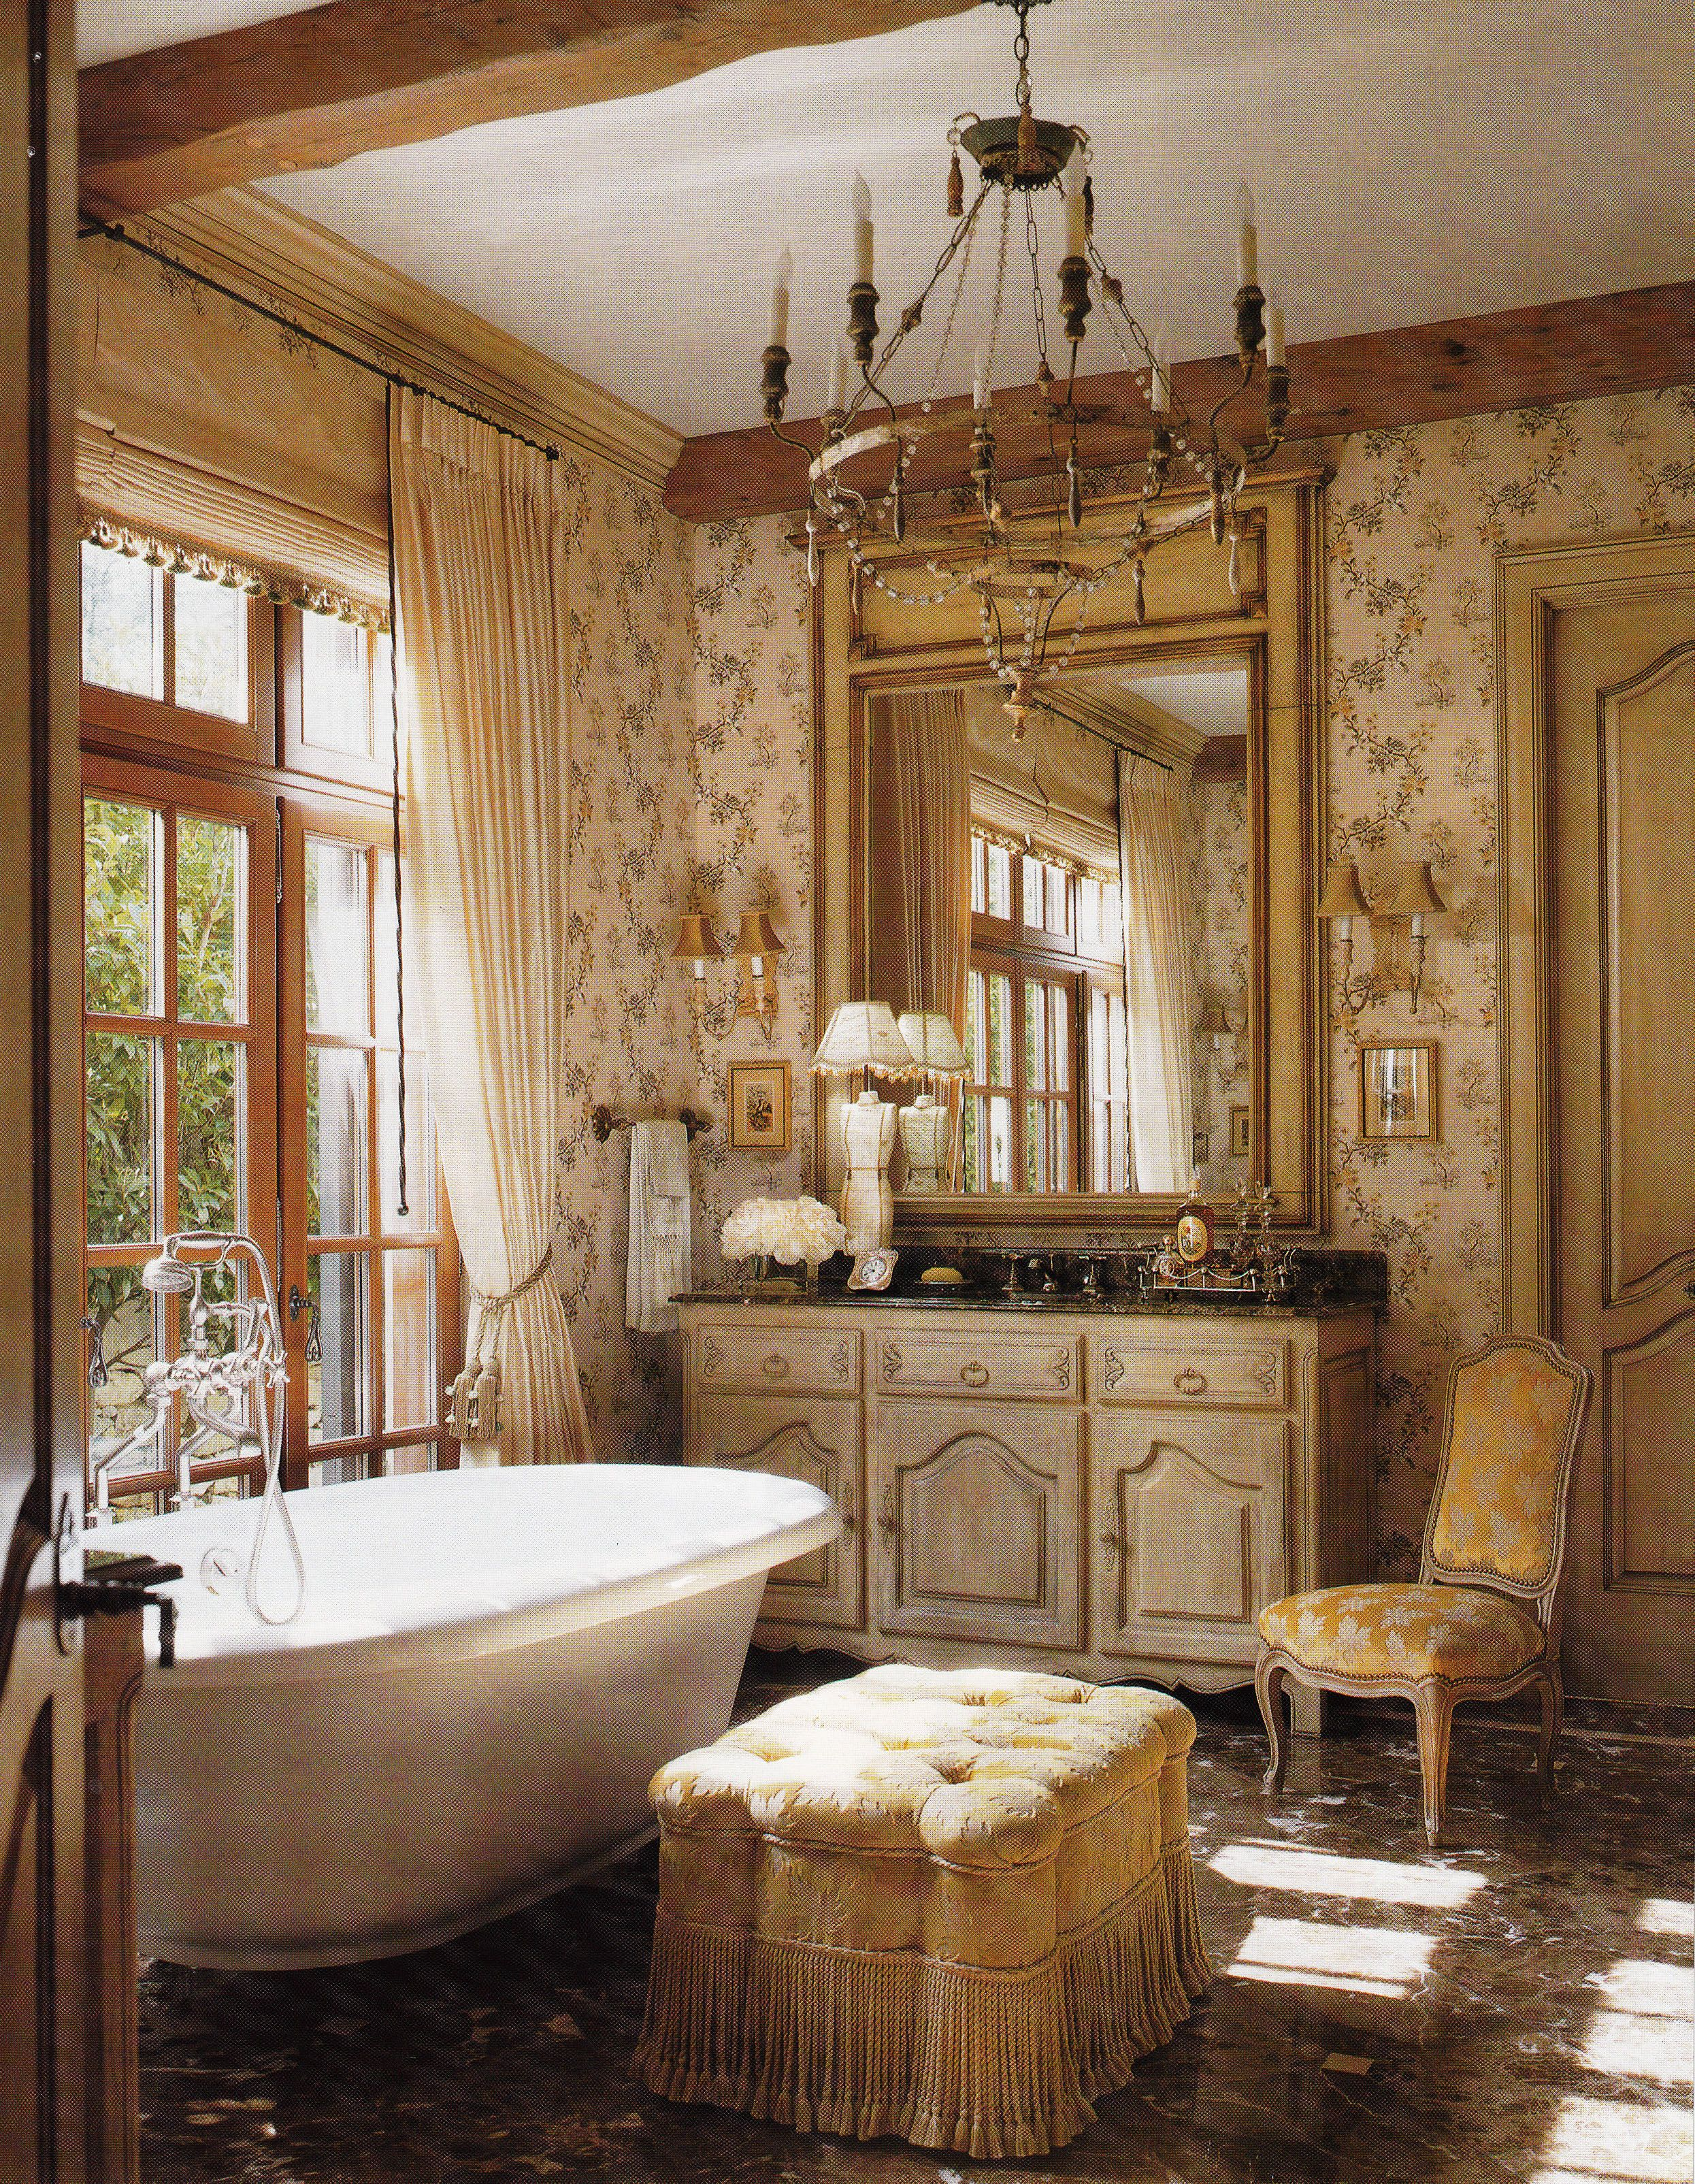 Country French Bathroom Jack Susan Arnold Architect And Interior French Country Bathroom French Country House Beautiful Bathrooms